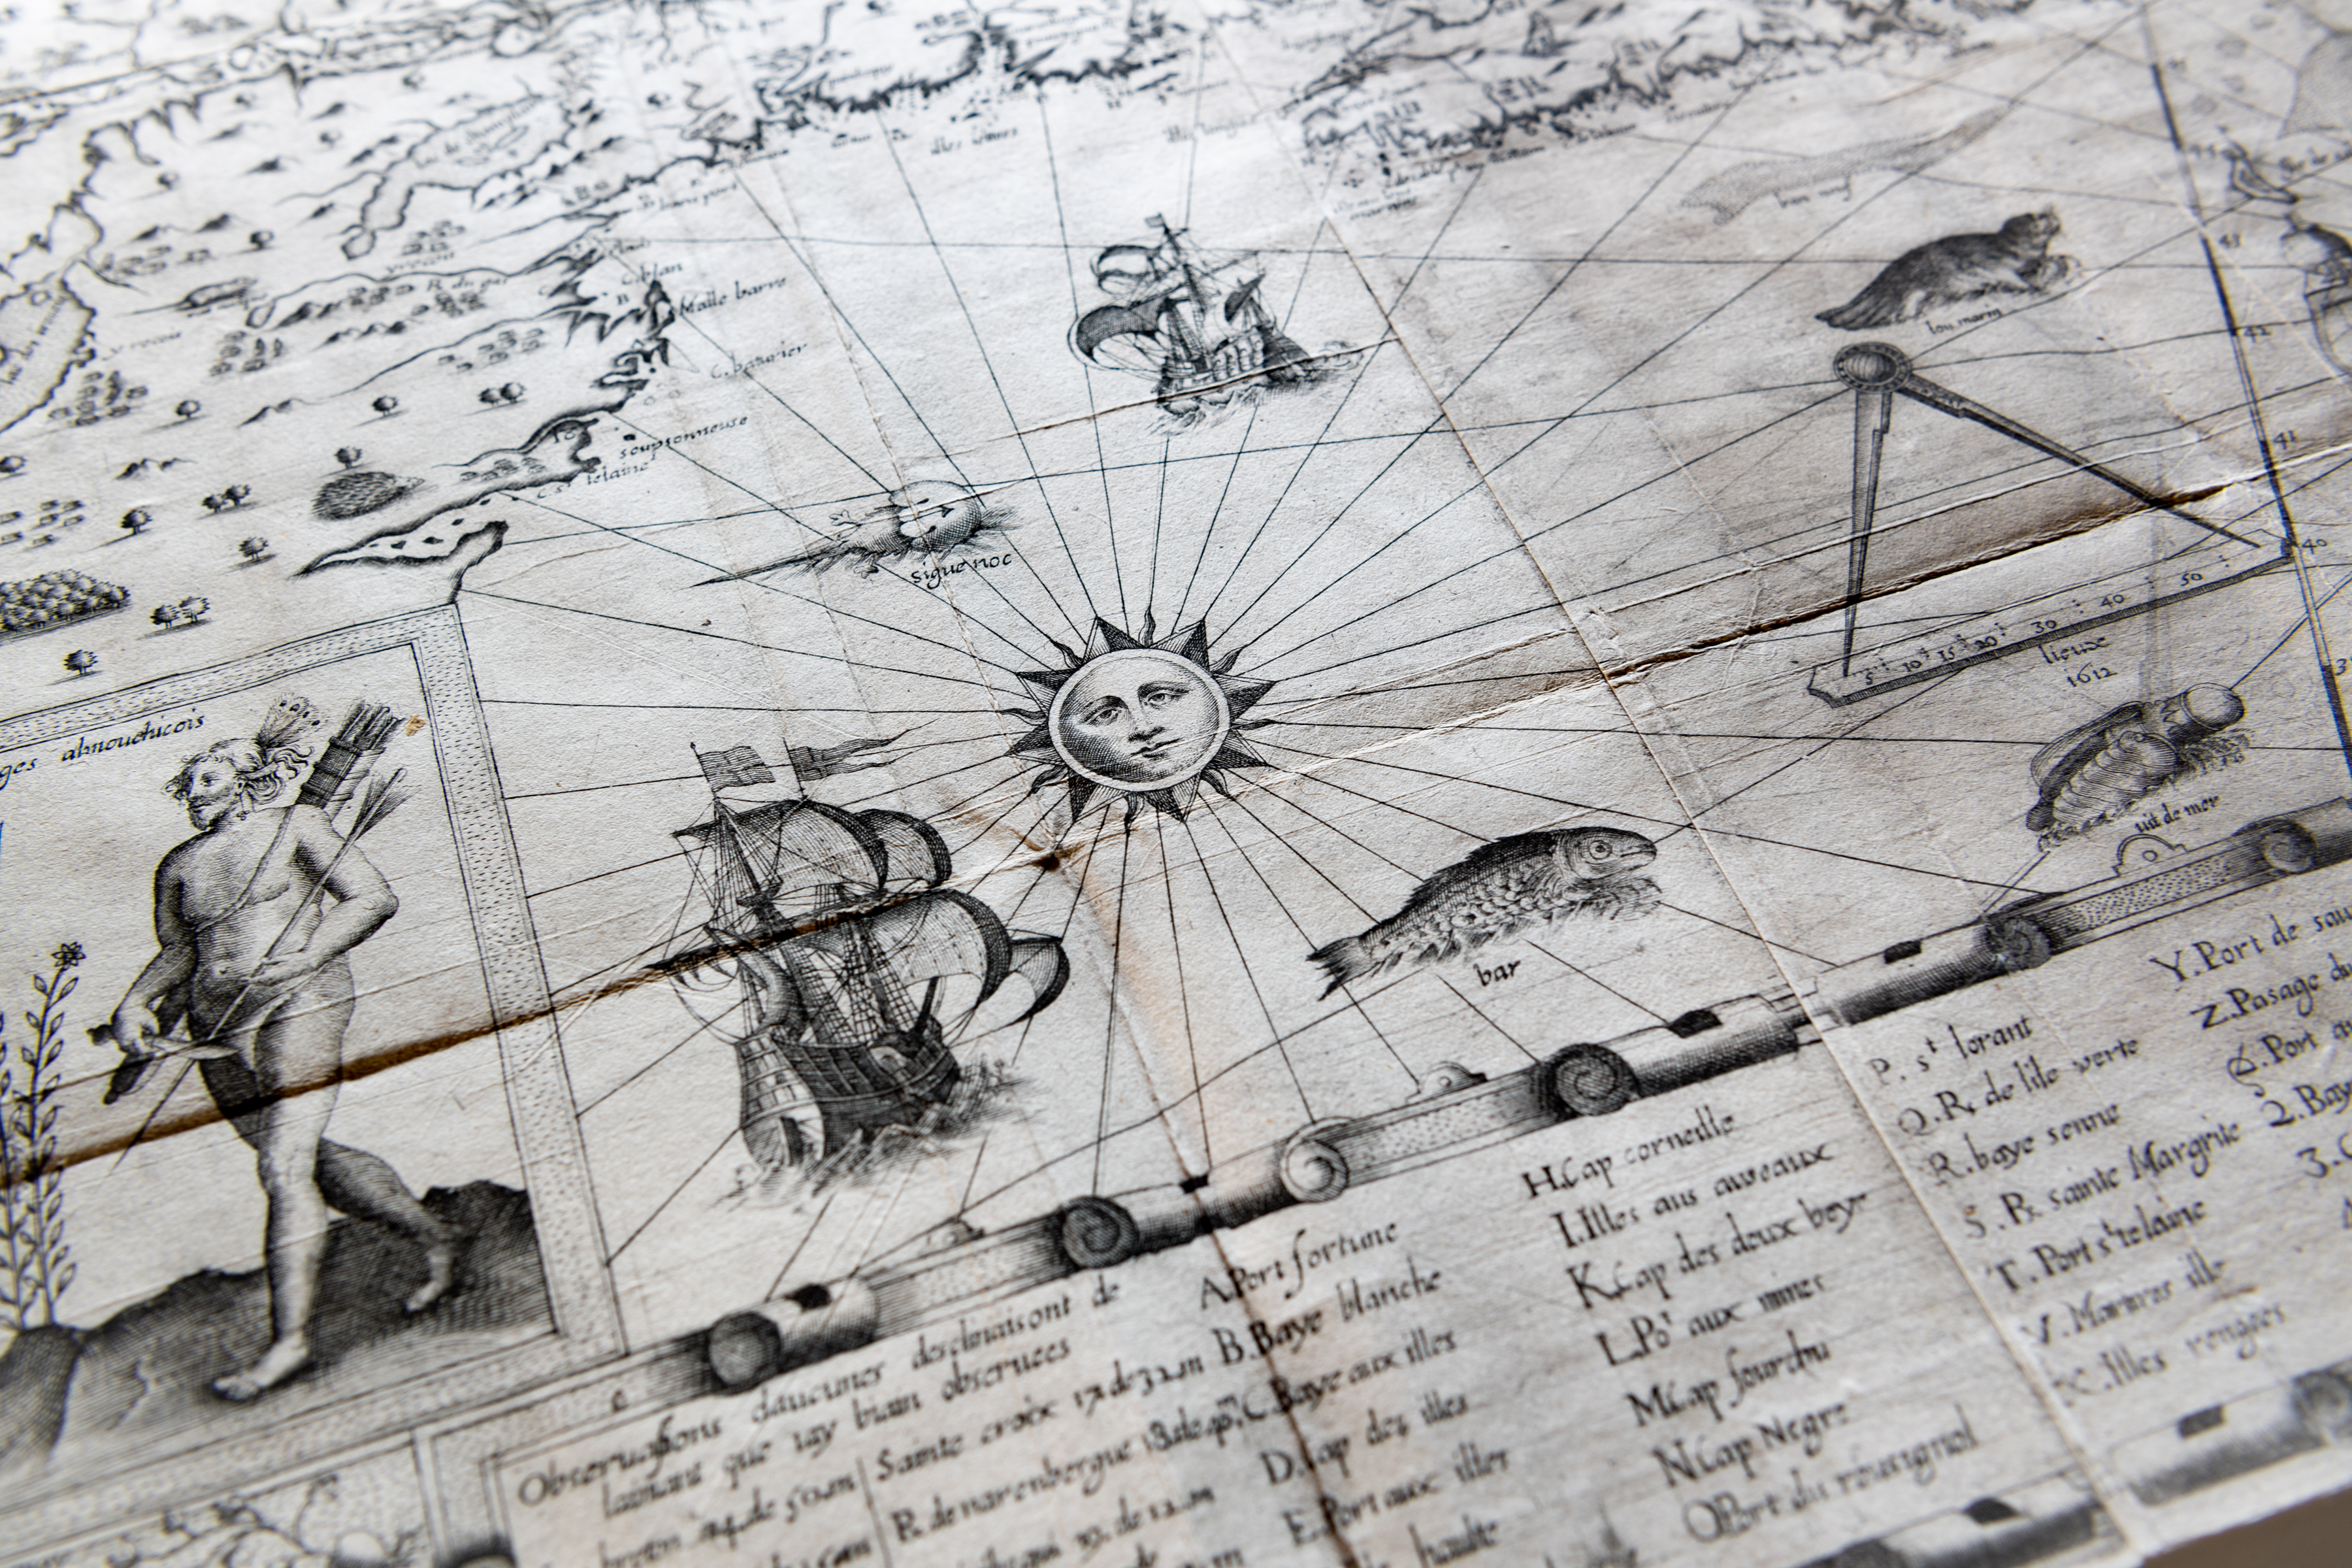 Detail of a printed map shows decorative elements such a sun, a person carrying arrows, ships and fish at sea, a scale, and a key with text in French at the bottom of the map.